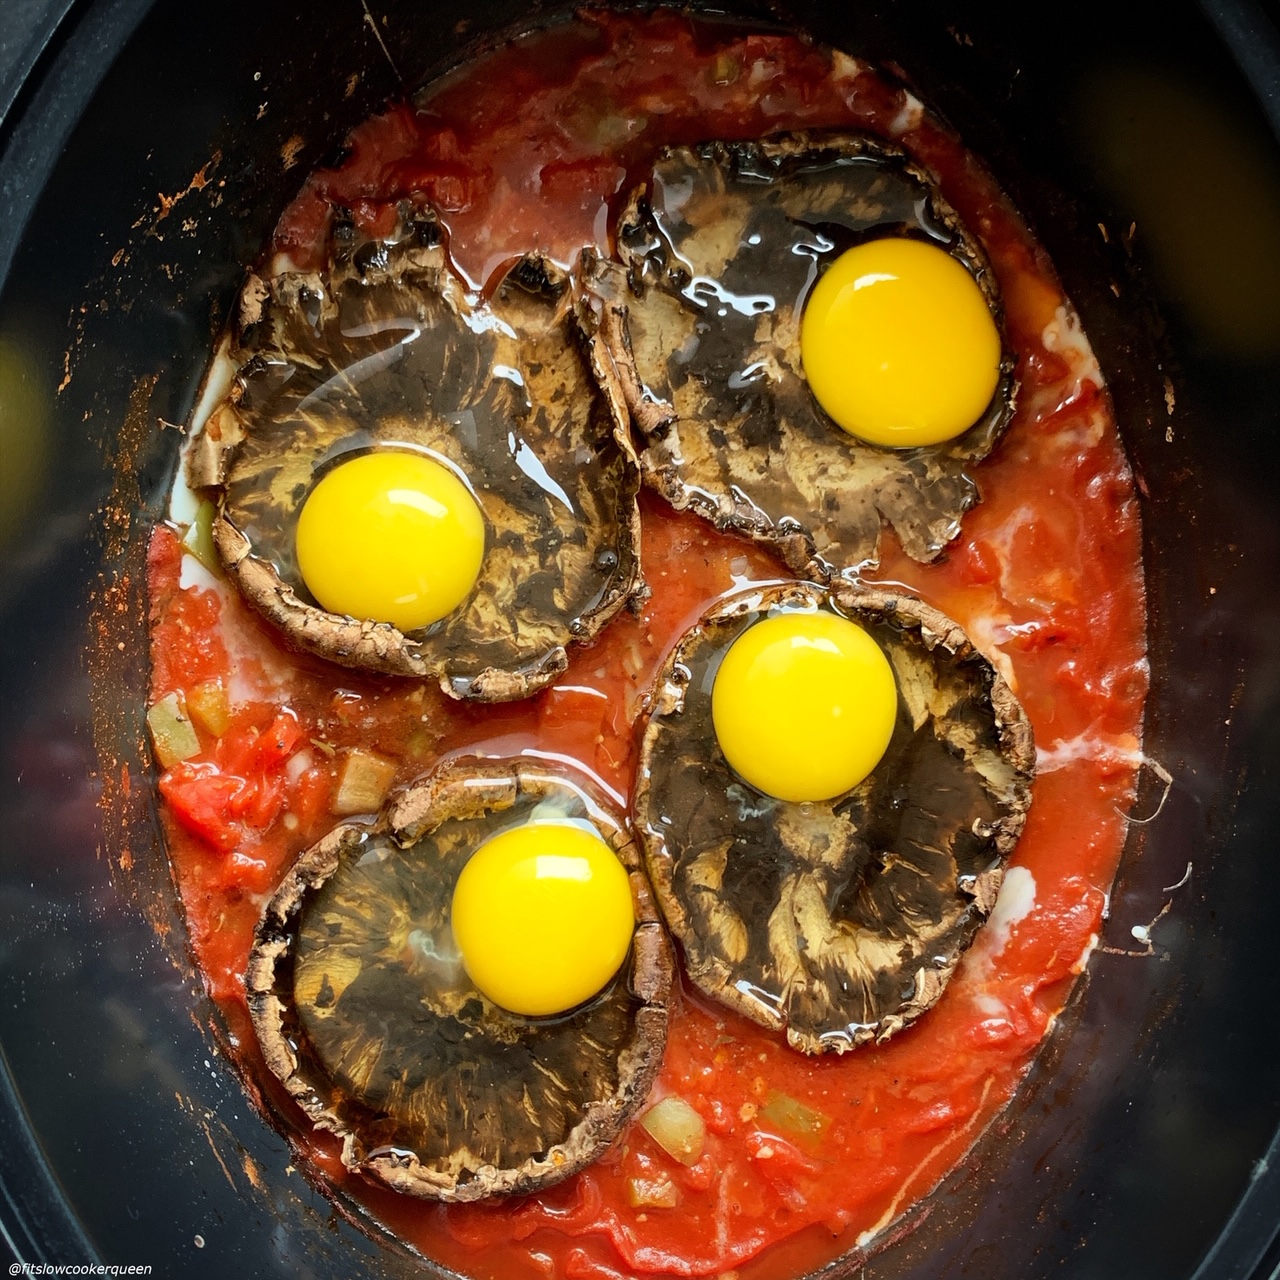 raw eggs added on top of cooked portobello mushrooms in the slow cooker